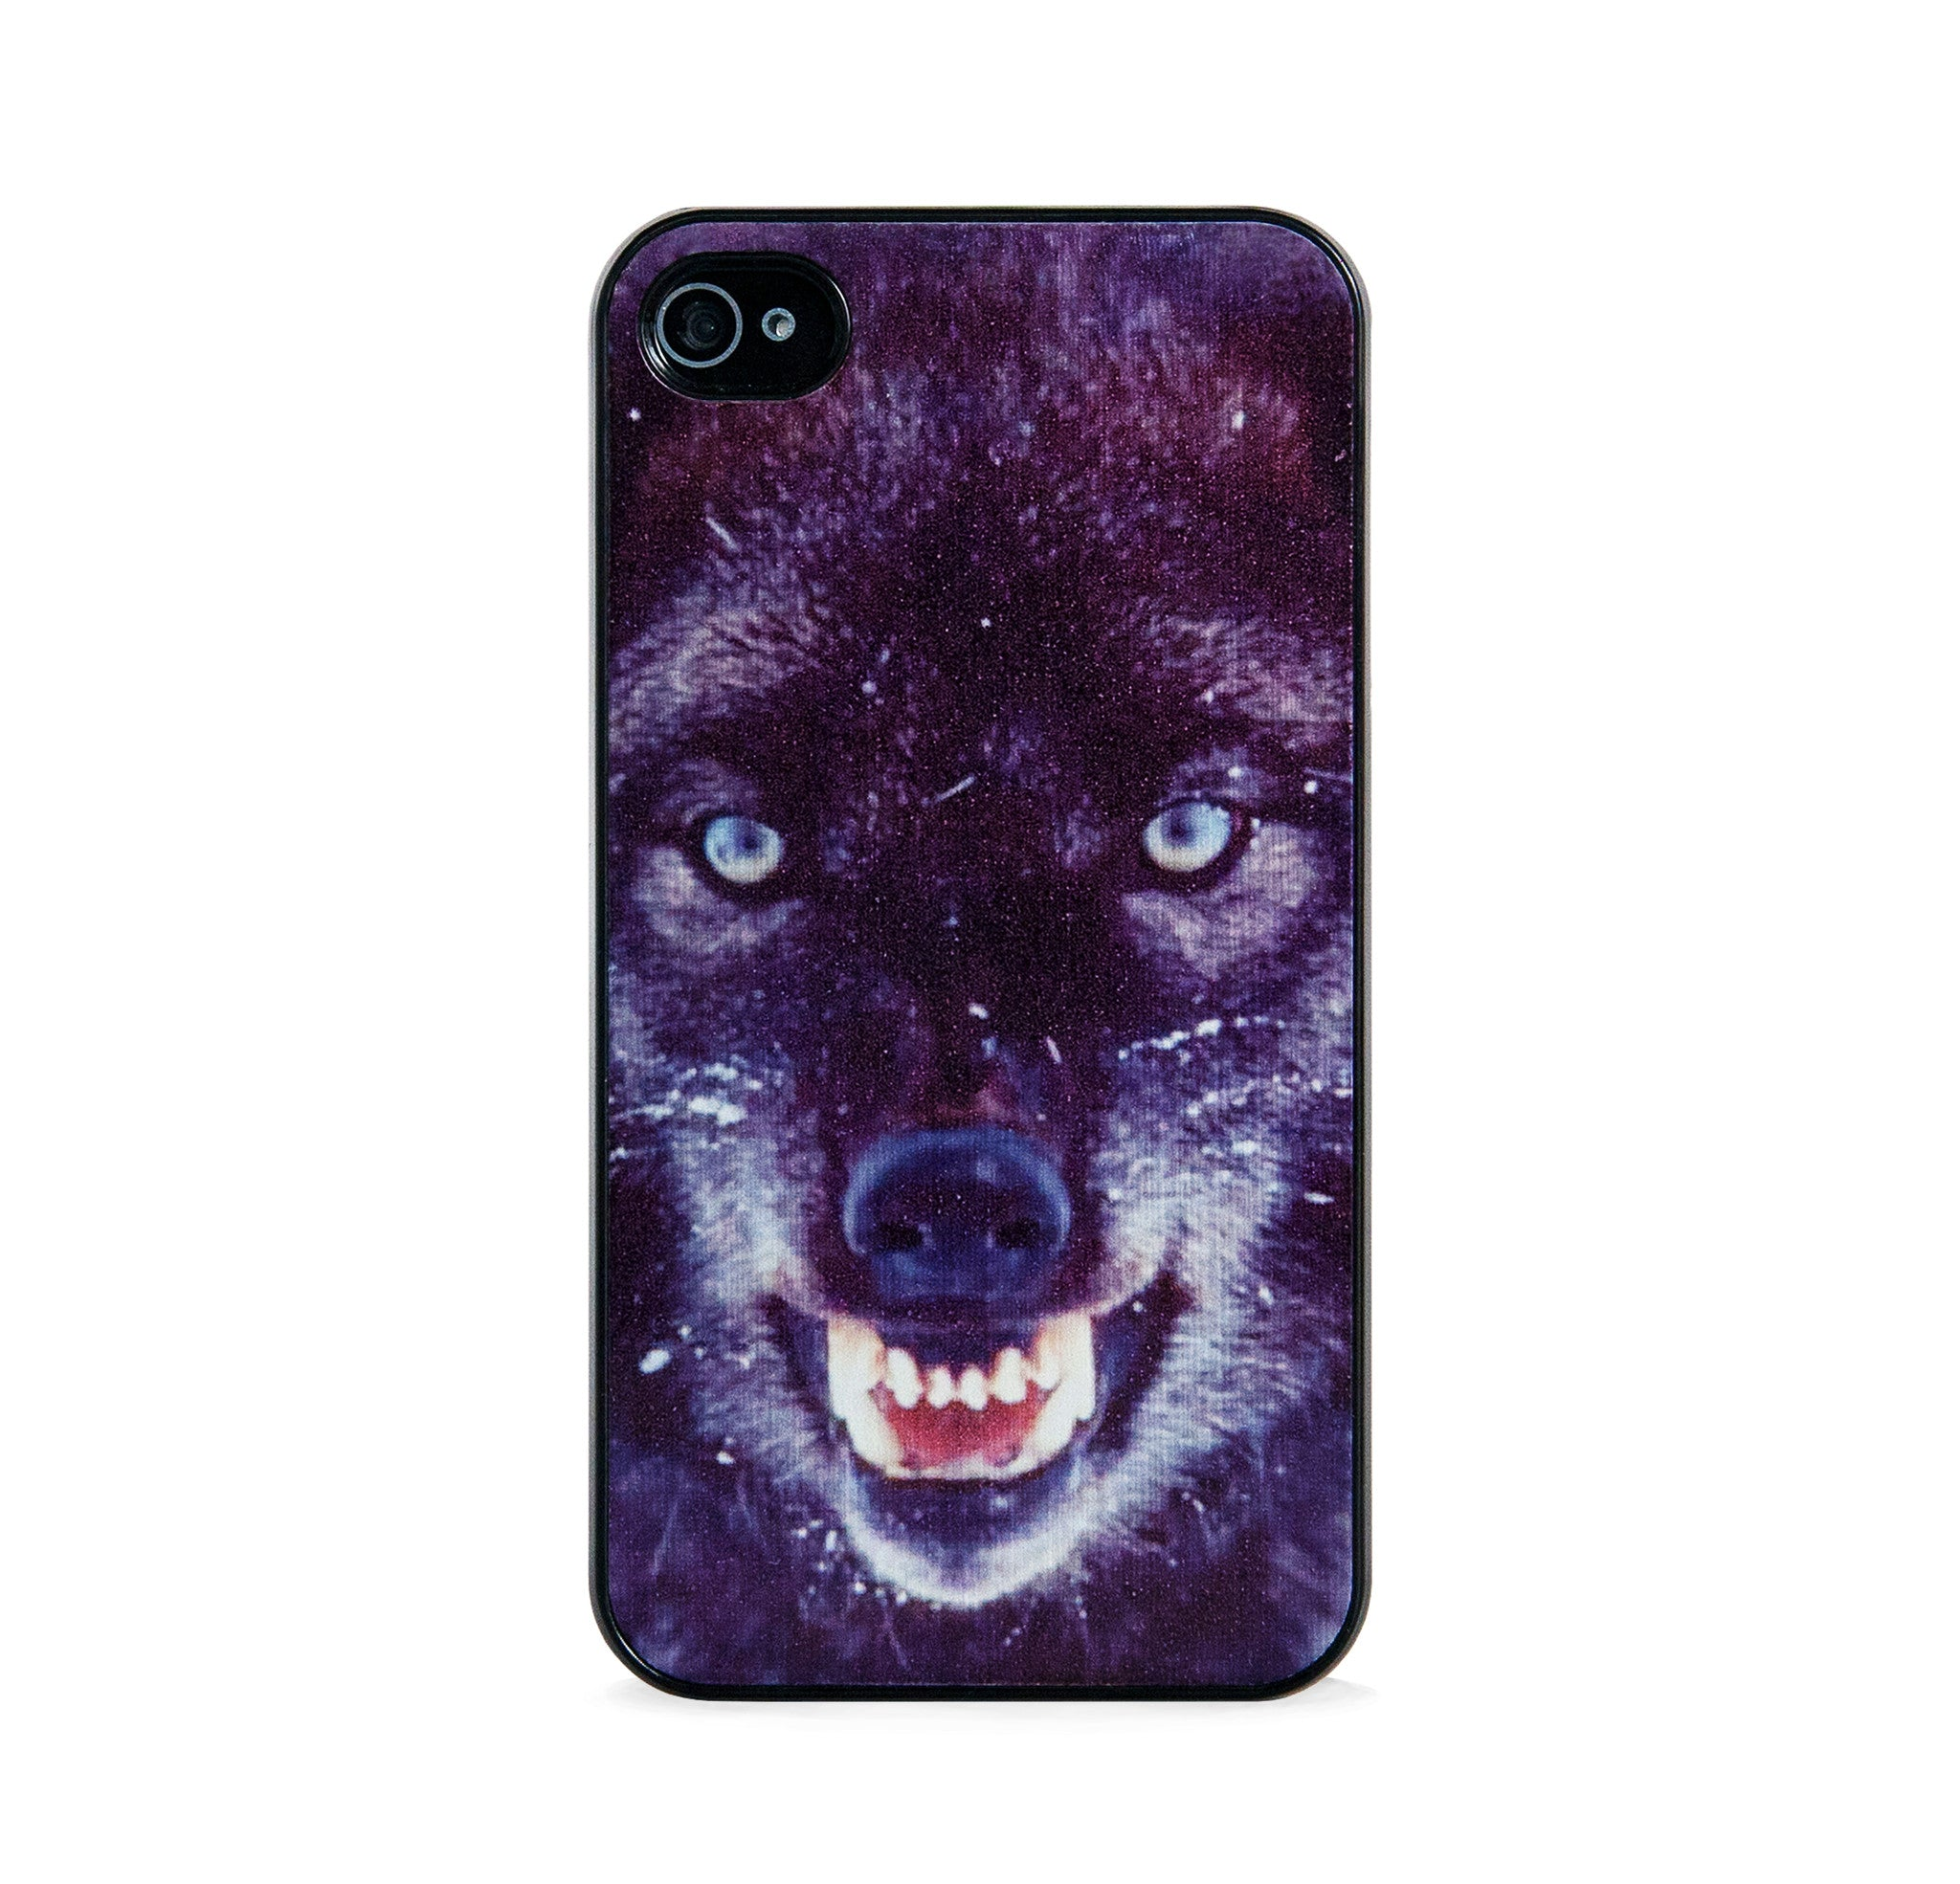 WILD WOLF BLACK FOR IPHONE 4/4S